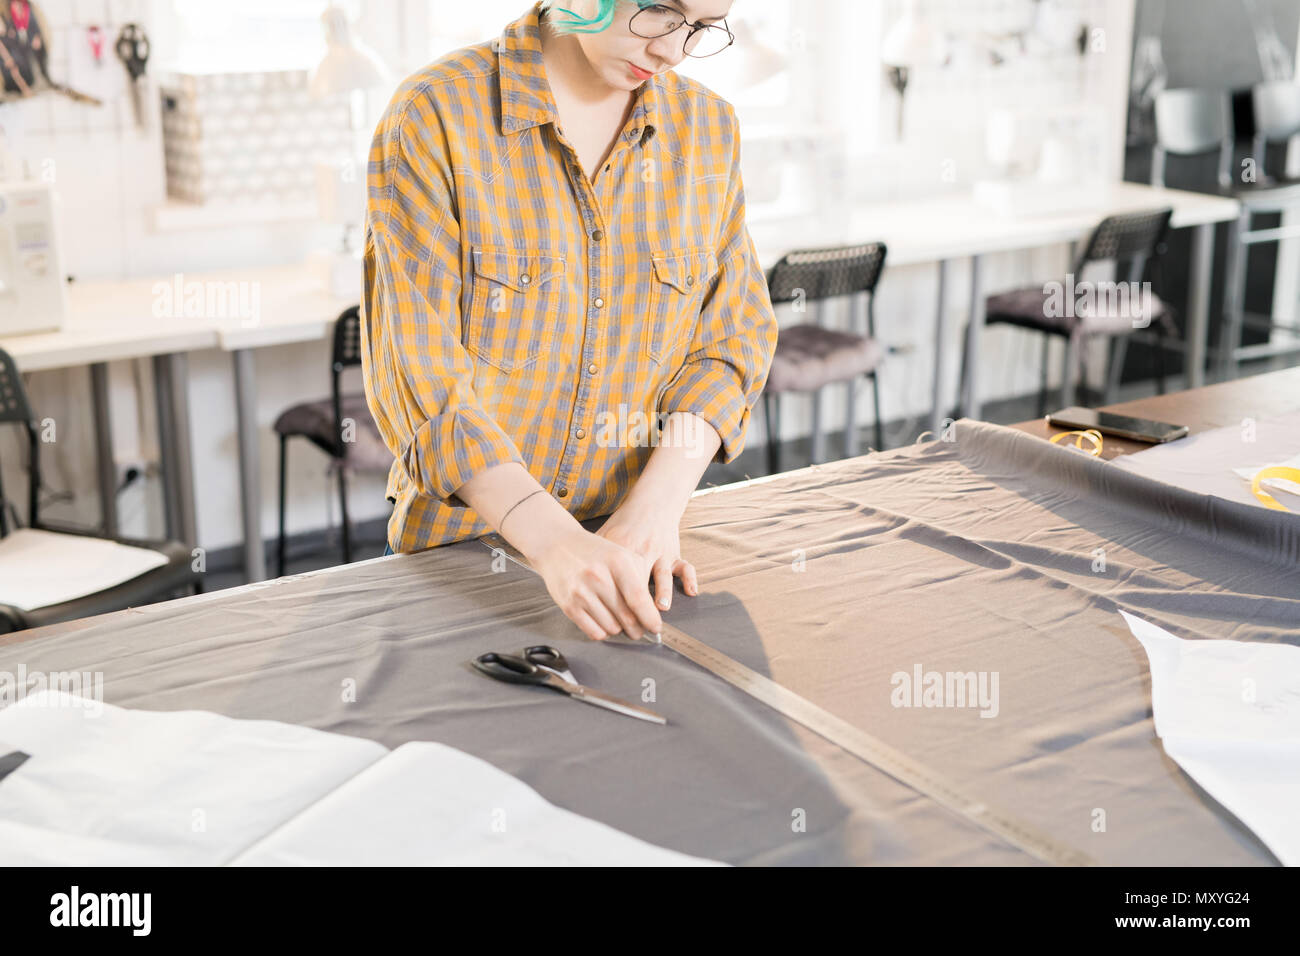 Portrait of  female tailor tracing fabric with white chalk while sewing custom made clothes, copy space - Stock Image